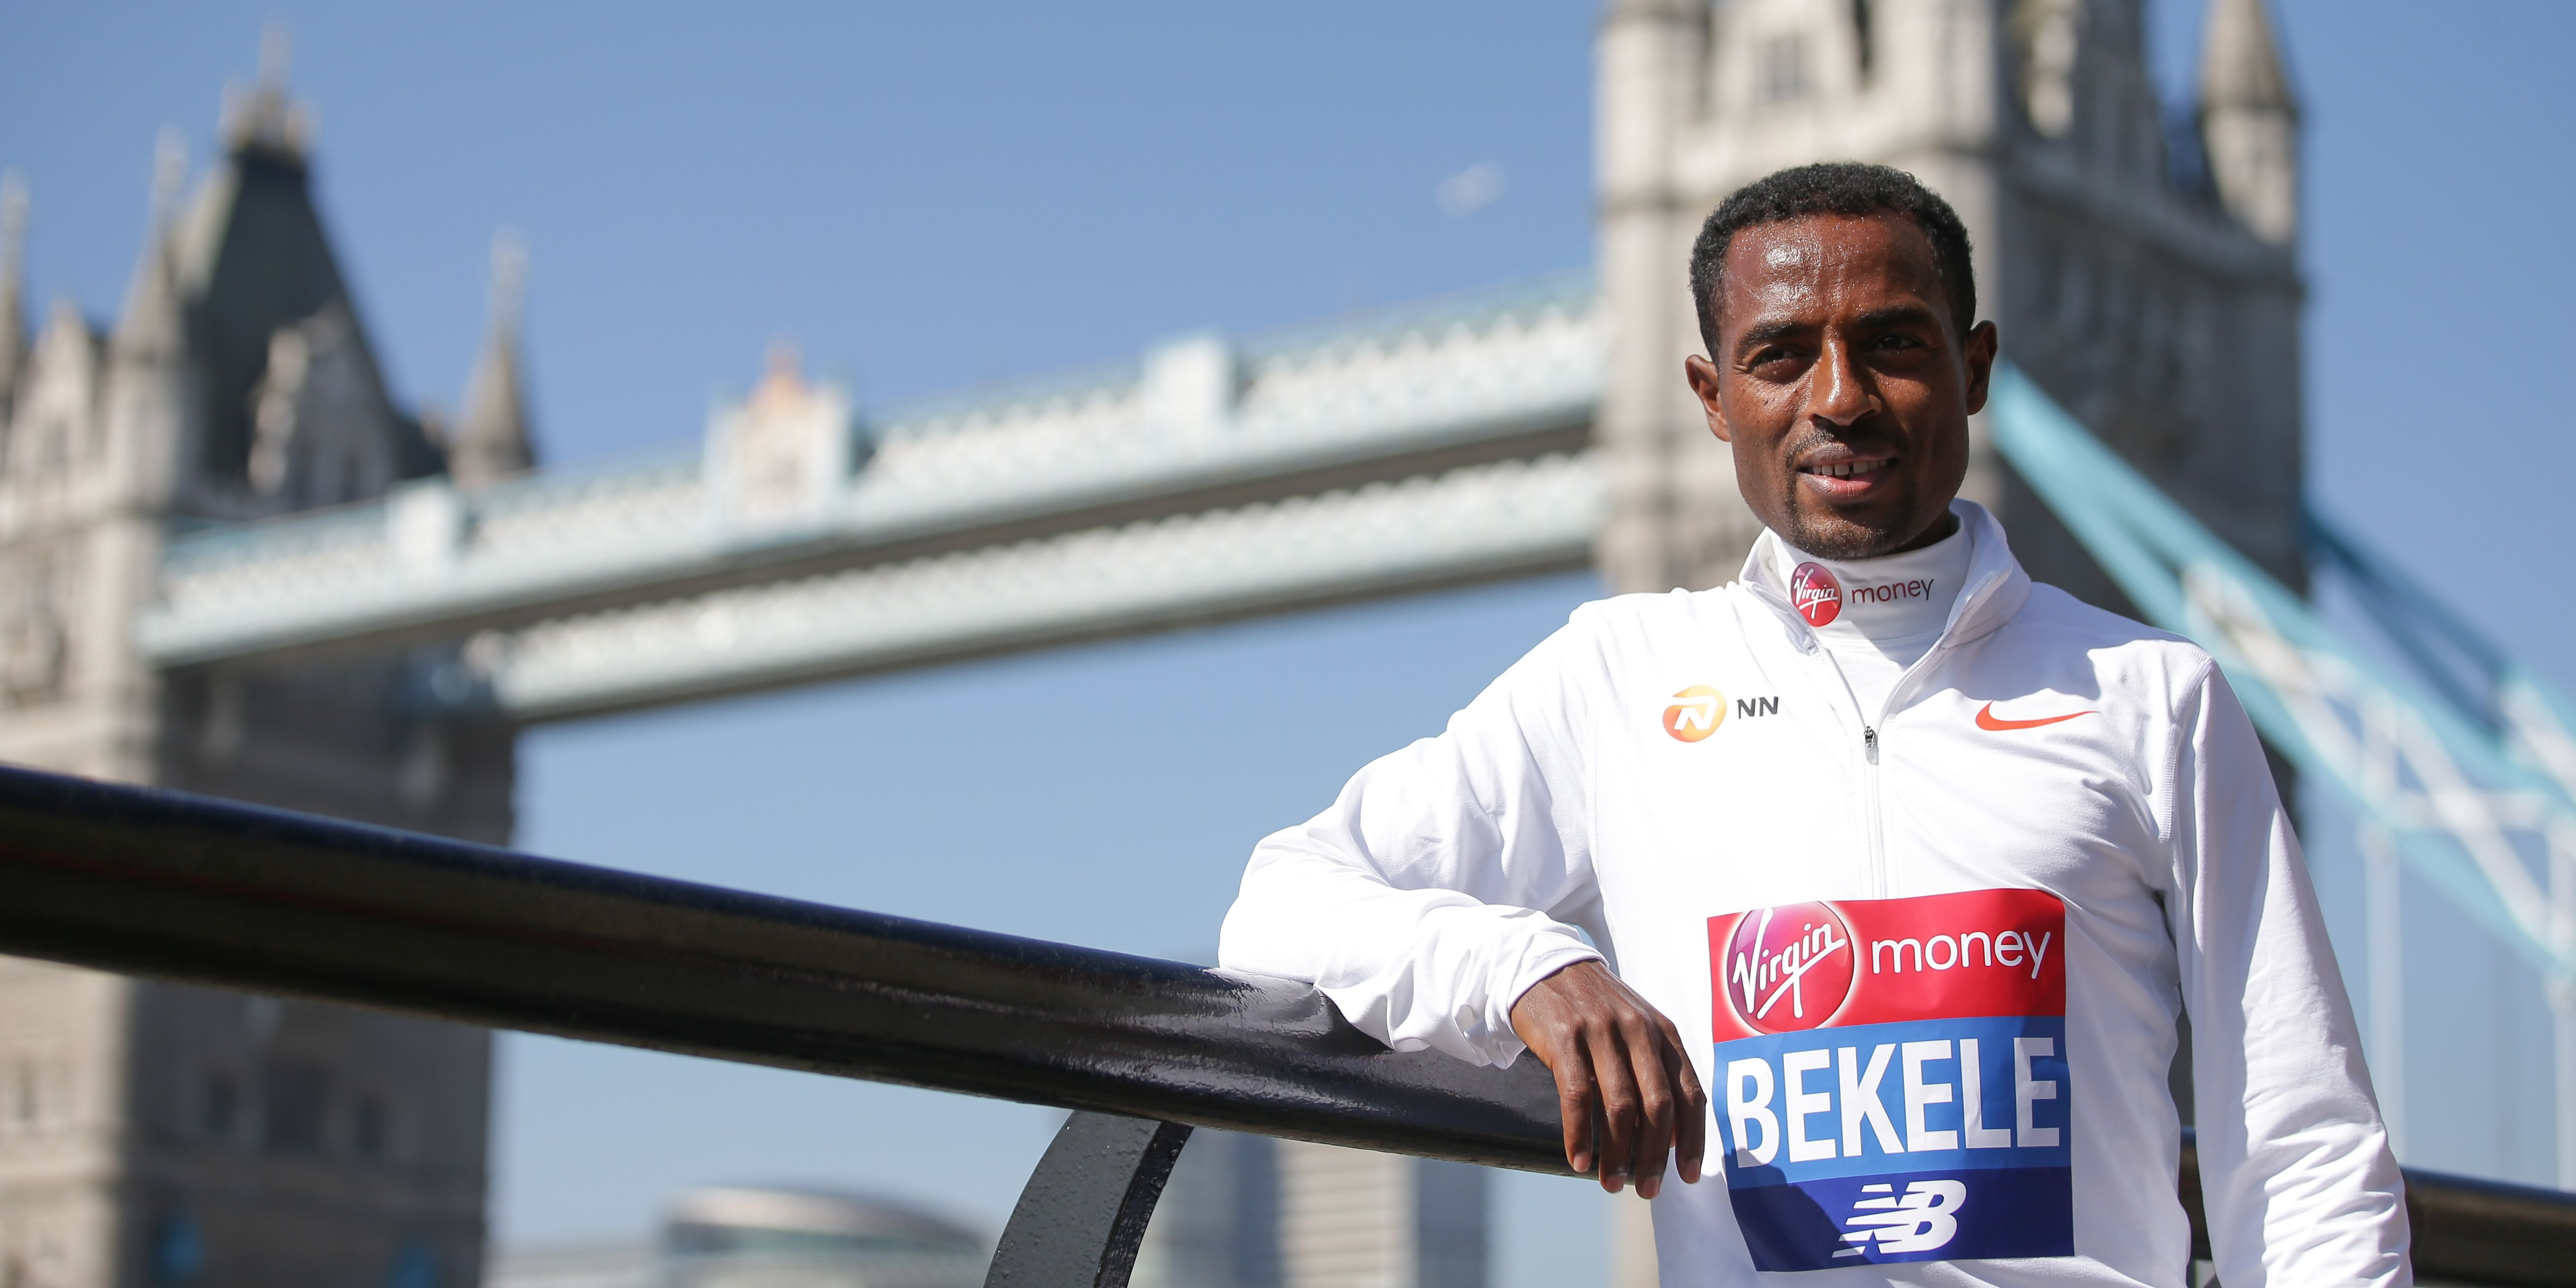 These are the shoes Kenenisa Bekele will wear for the elite-only London Marathon